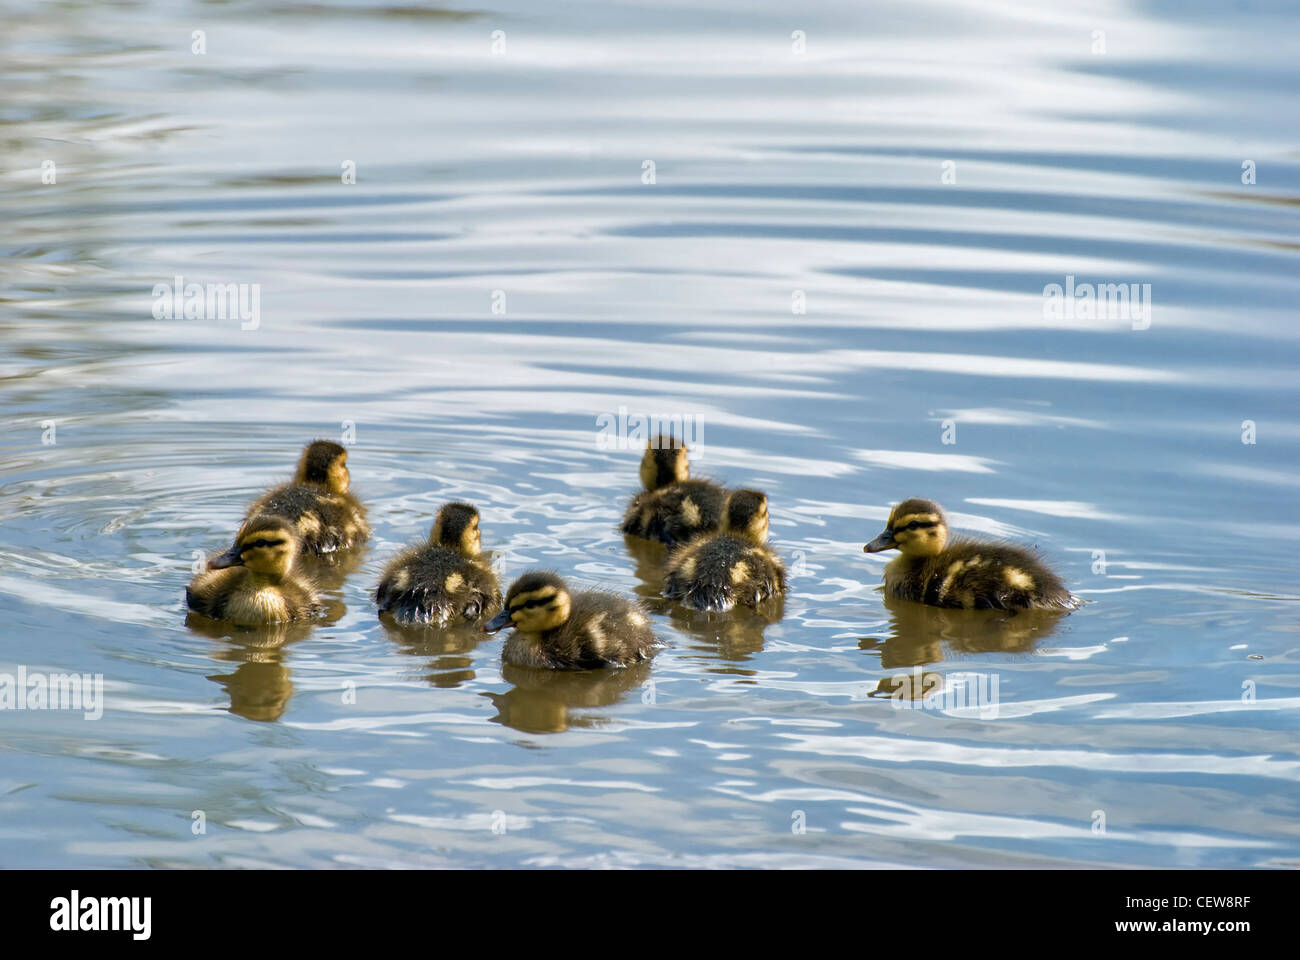 Group of seven mallard ducklings swimming in pond in Barrs Court, Bristol, UK - Stock Image